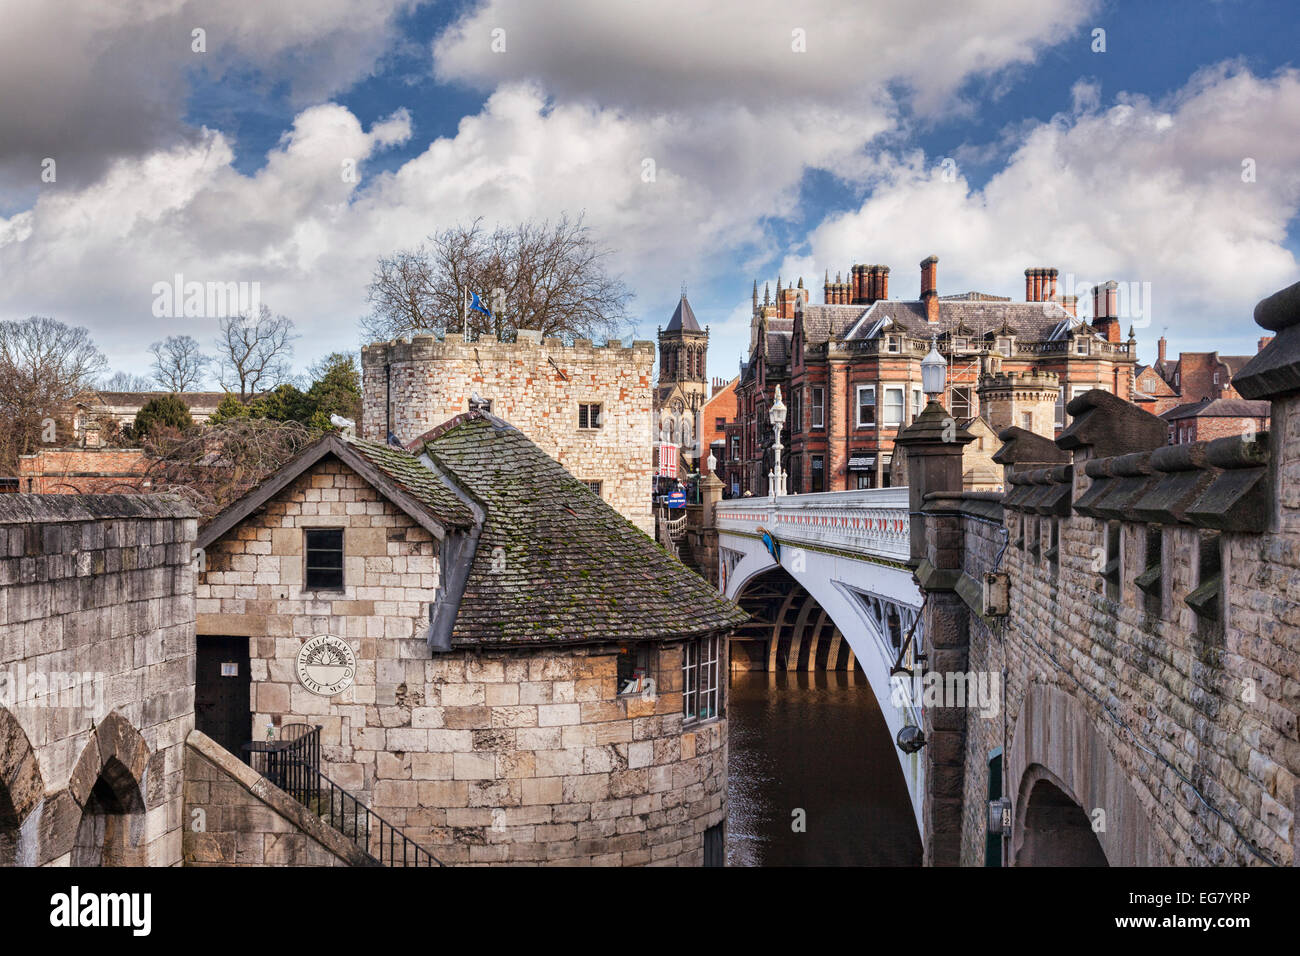 Some of the historic buildings of York, North Yorkshire, England, showing a variety of styles from the city's - Stock Image